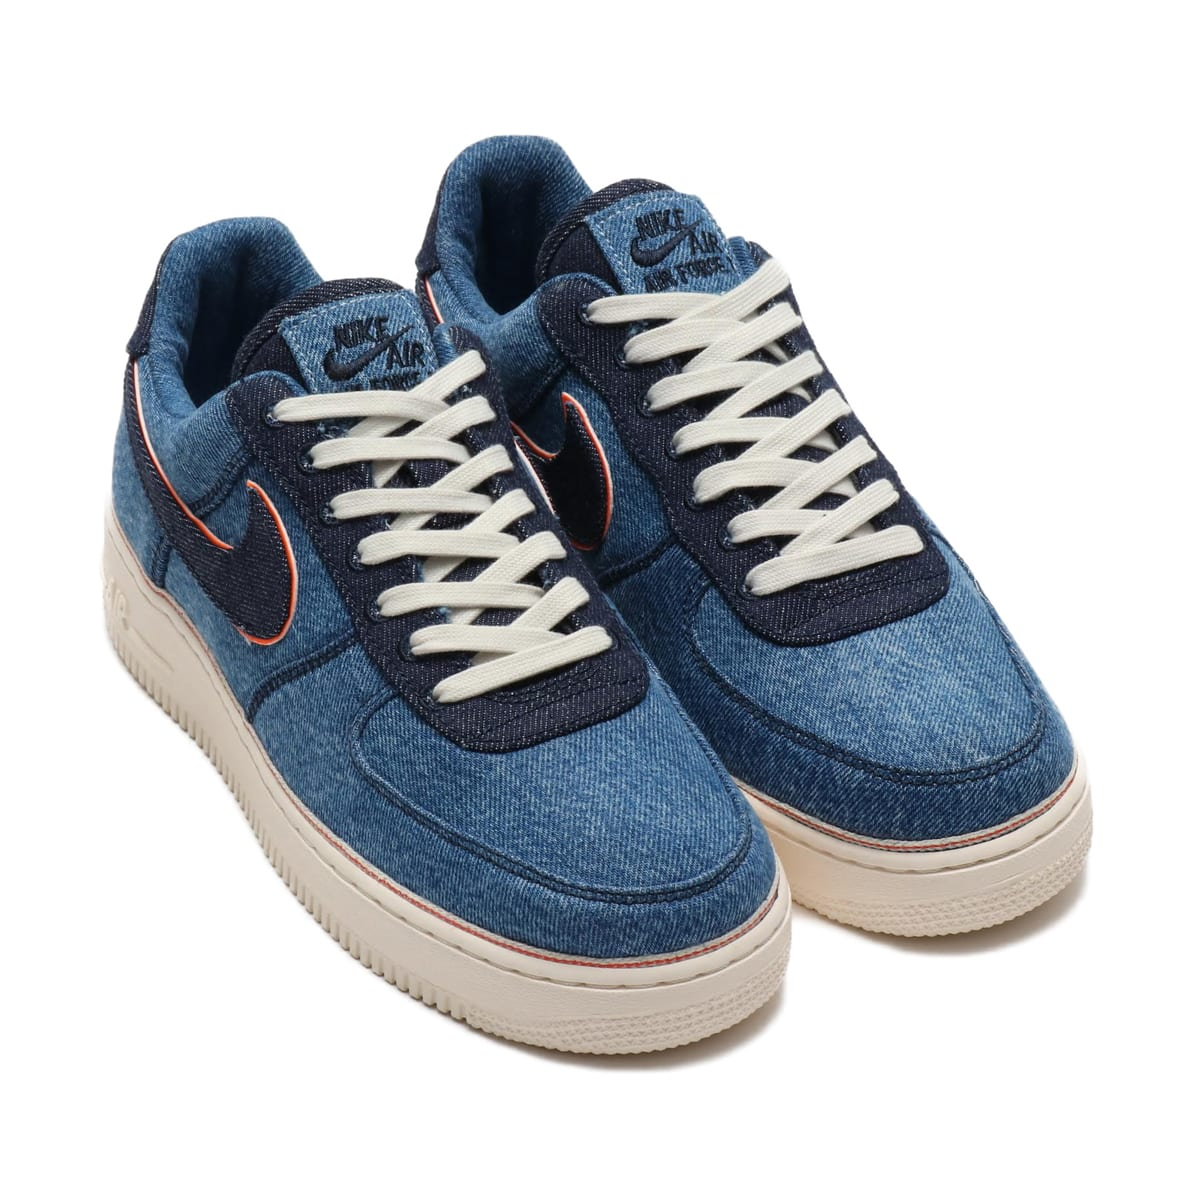 NIKE AIR FORCE 1 07 PRM STONEWASH BLUE/DARK OBSIDIAN 19SU-S_photo_large